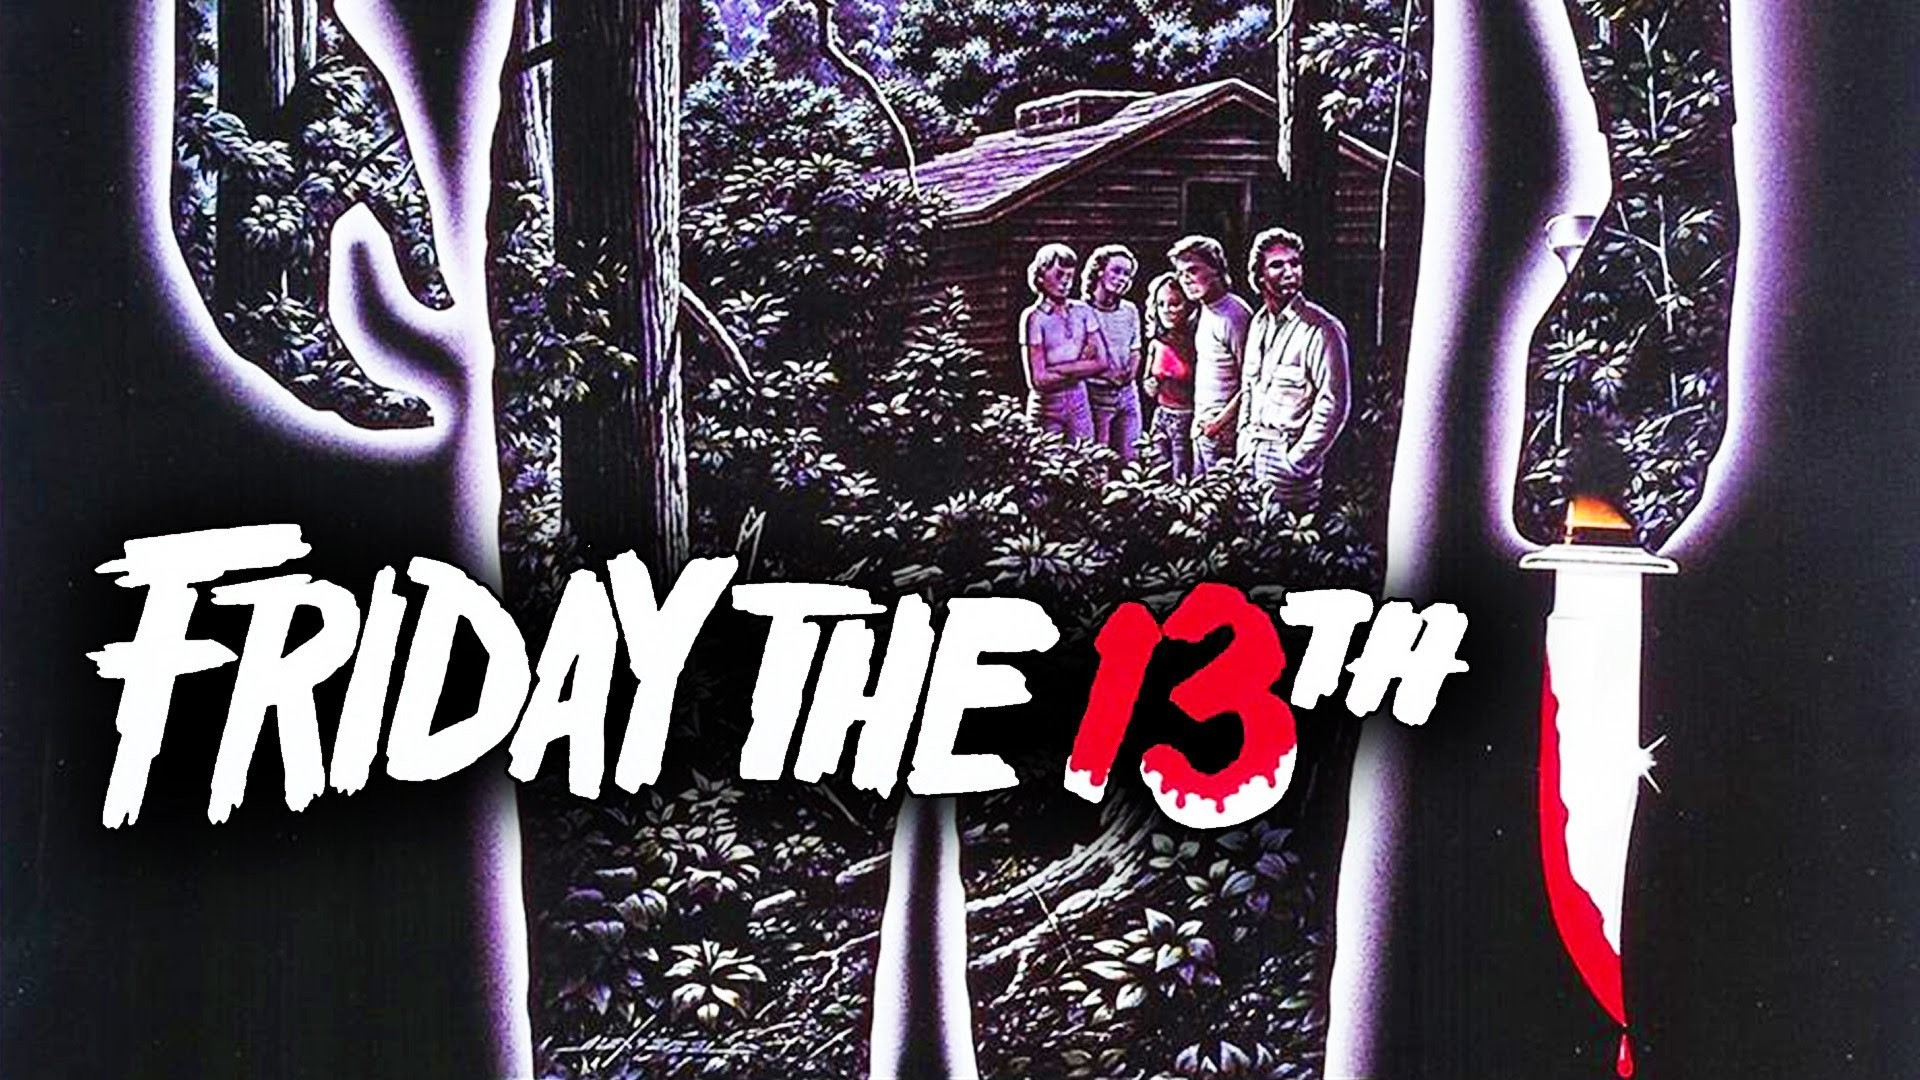 'Friday the 13th' Movie Run Returns To Its Blairstown Roots This Friday!